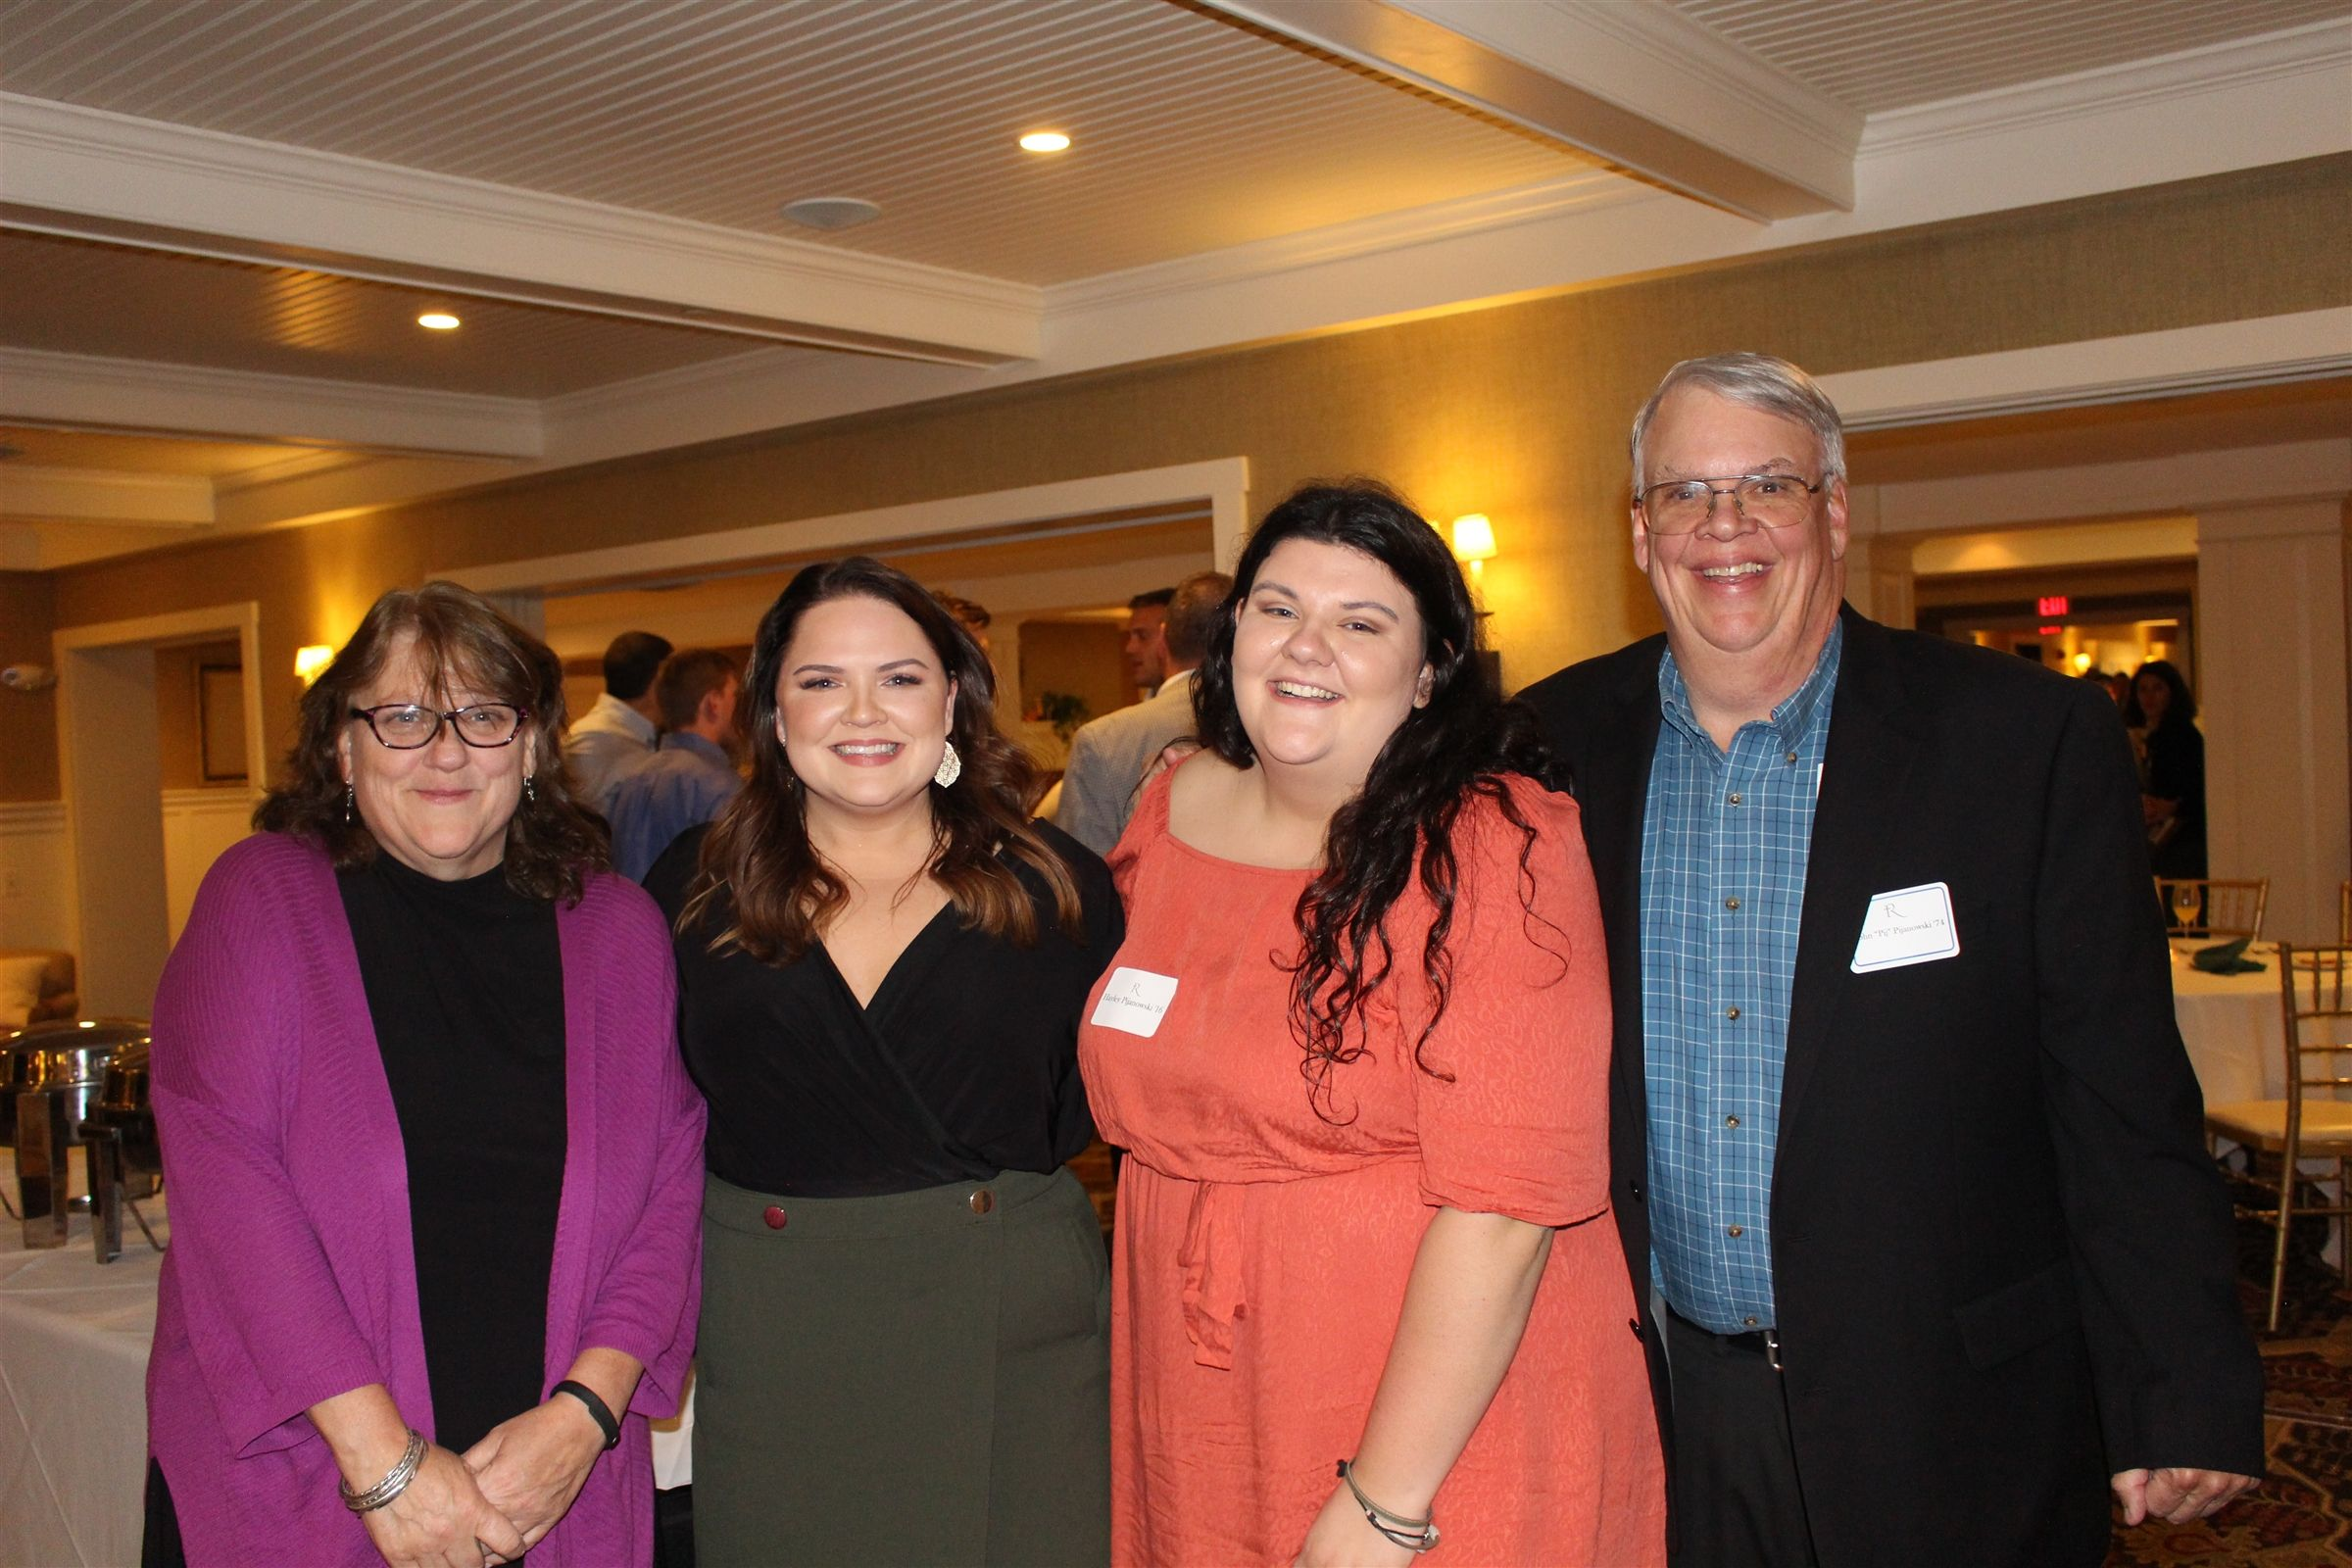 Inductees John '74 and Sheila Riley '82 Pijanowski with their daughters Emily '09 and Hayley '16